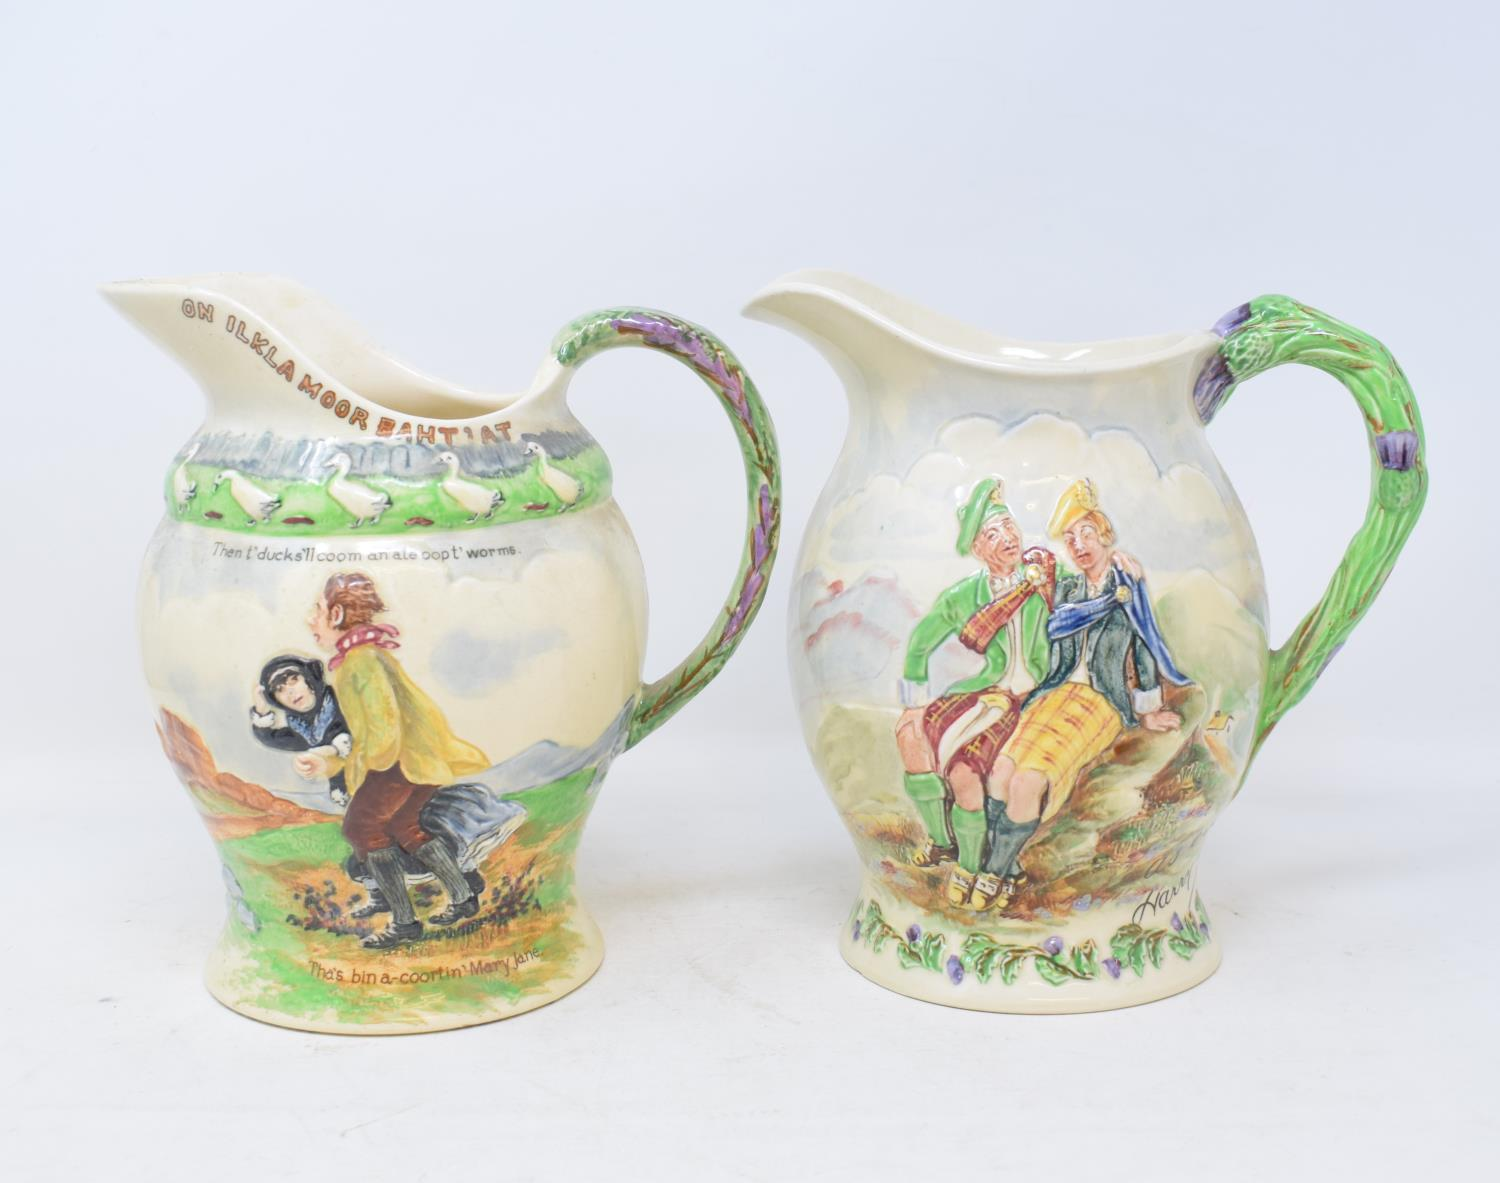 Lot 50 - A Crown Devon Roamin' In The Gloamin musical jug, 20 cm high, another, On Ilkla More Baht'at, a